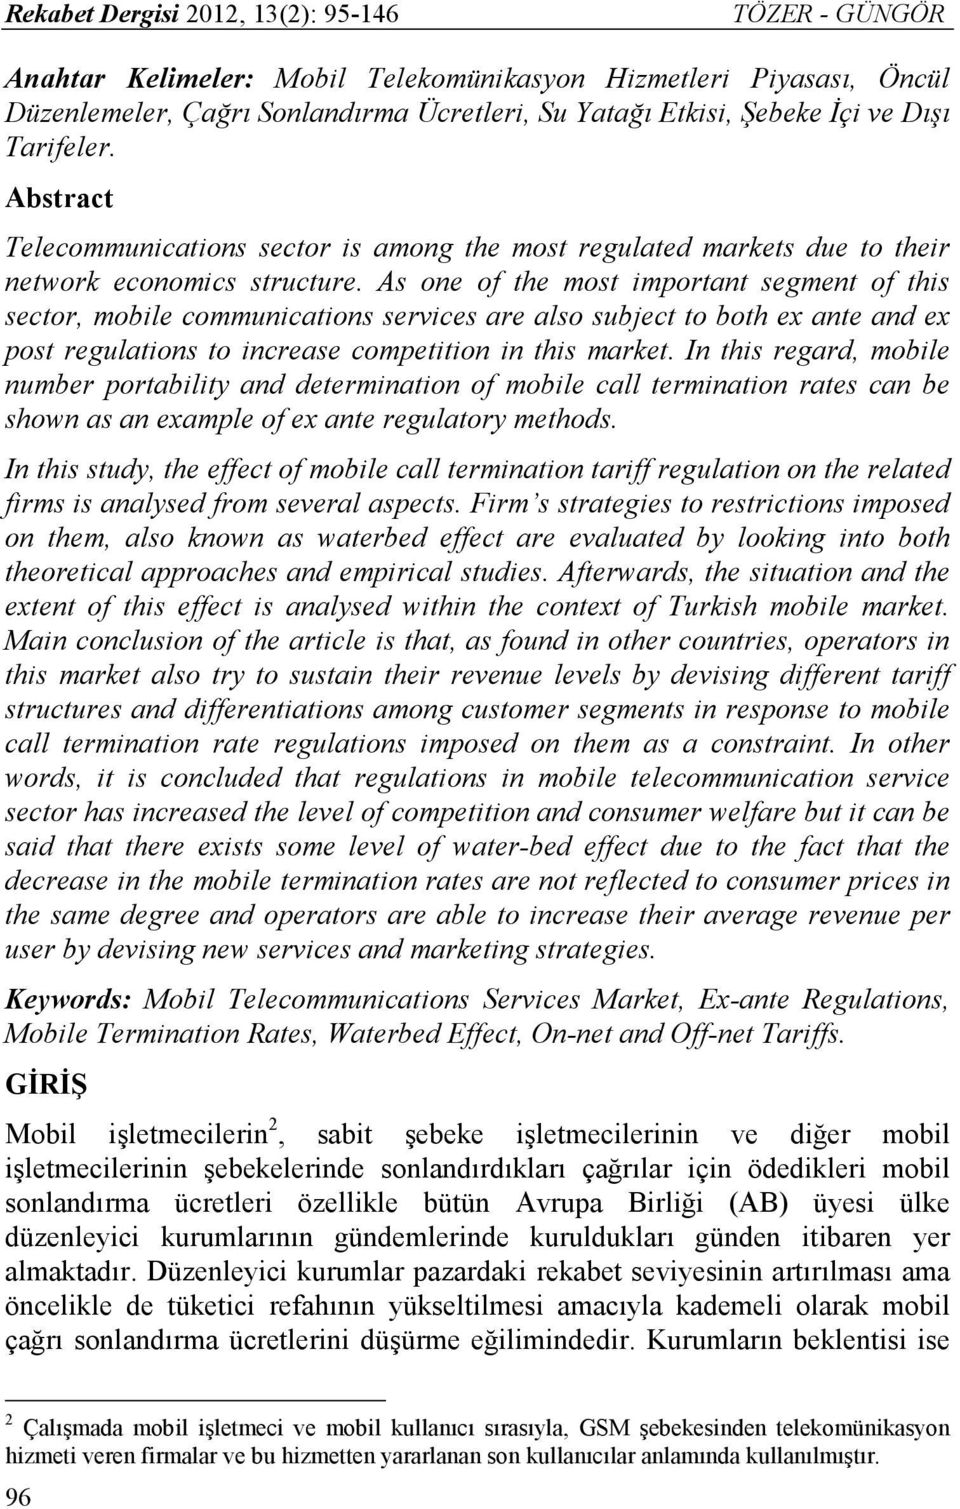 As one of the most important segment of this sector, mobile communications services are also subject to both ex ante and ex post regulations to increase competition in this market.